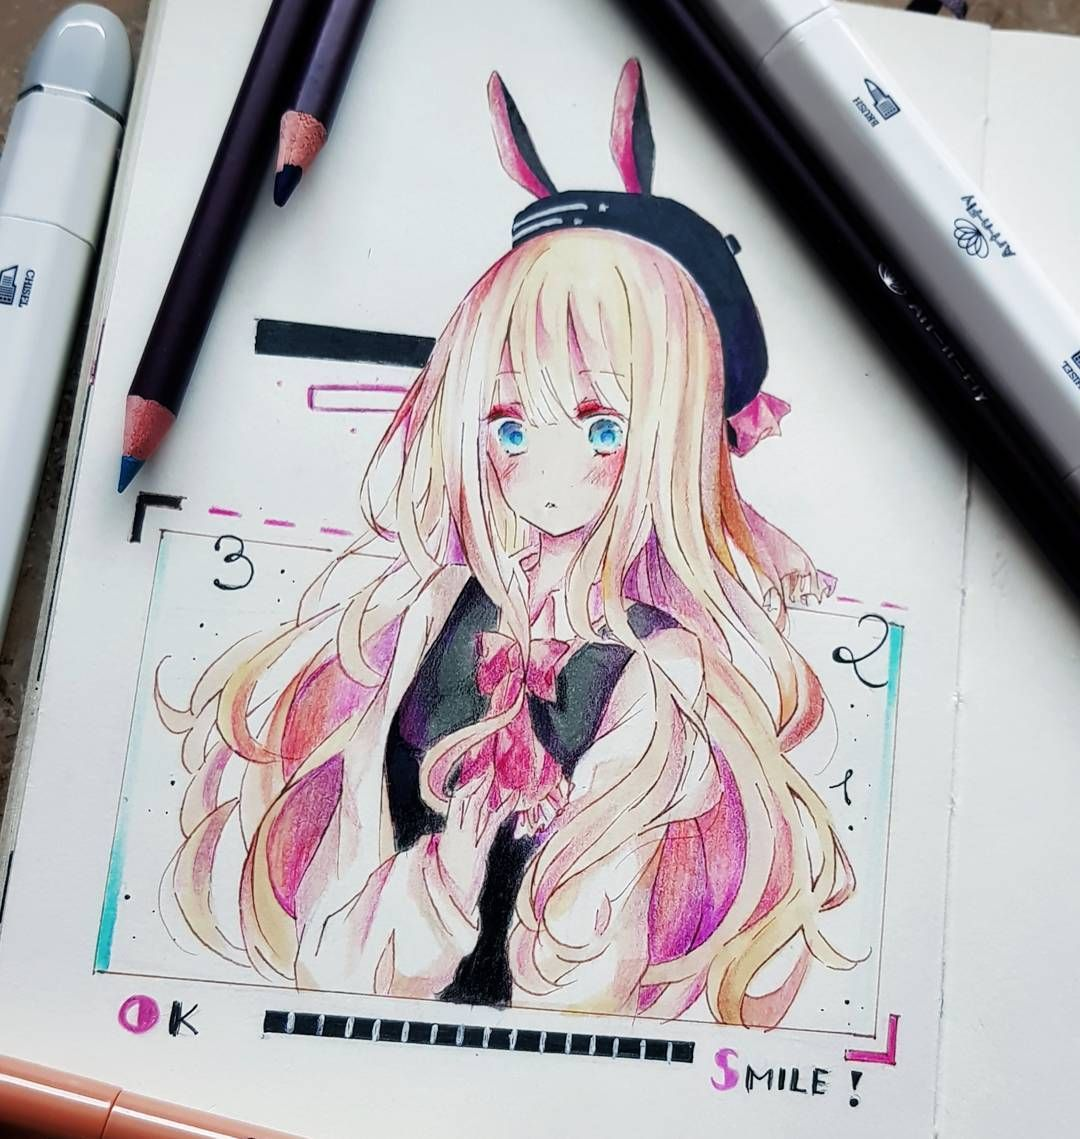 Manga Illustration With Art N Fly Alcohol Markers Oil Based Colored Pencils Sepia Pens And Black Pigment Pe Animated Drawings Anime Drawings Anime Art Tutorial